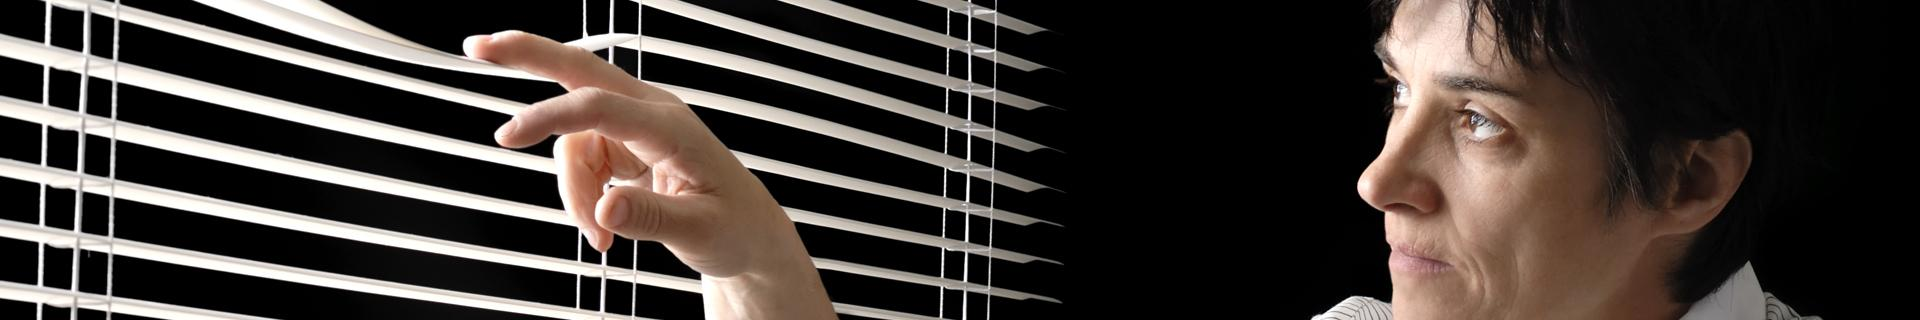 Woman looking through window blinds